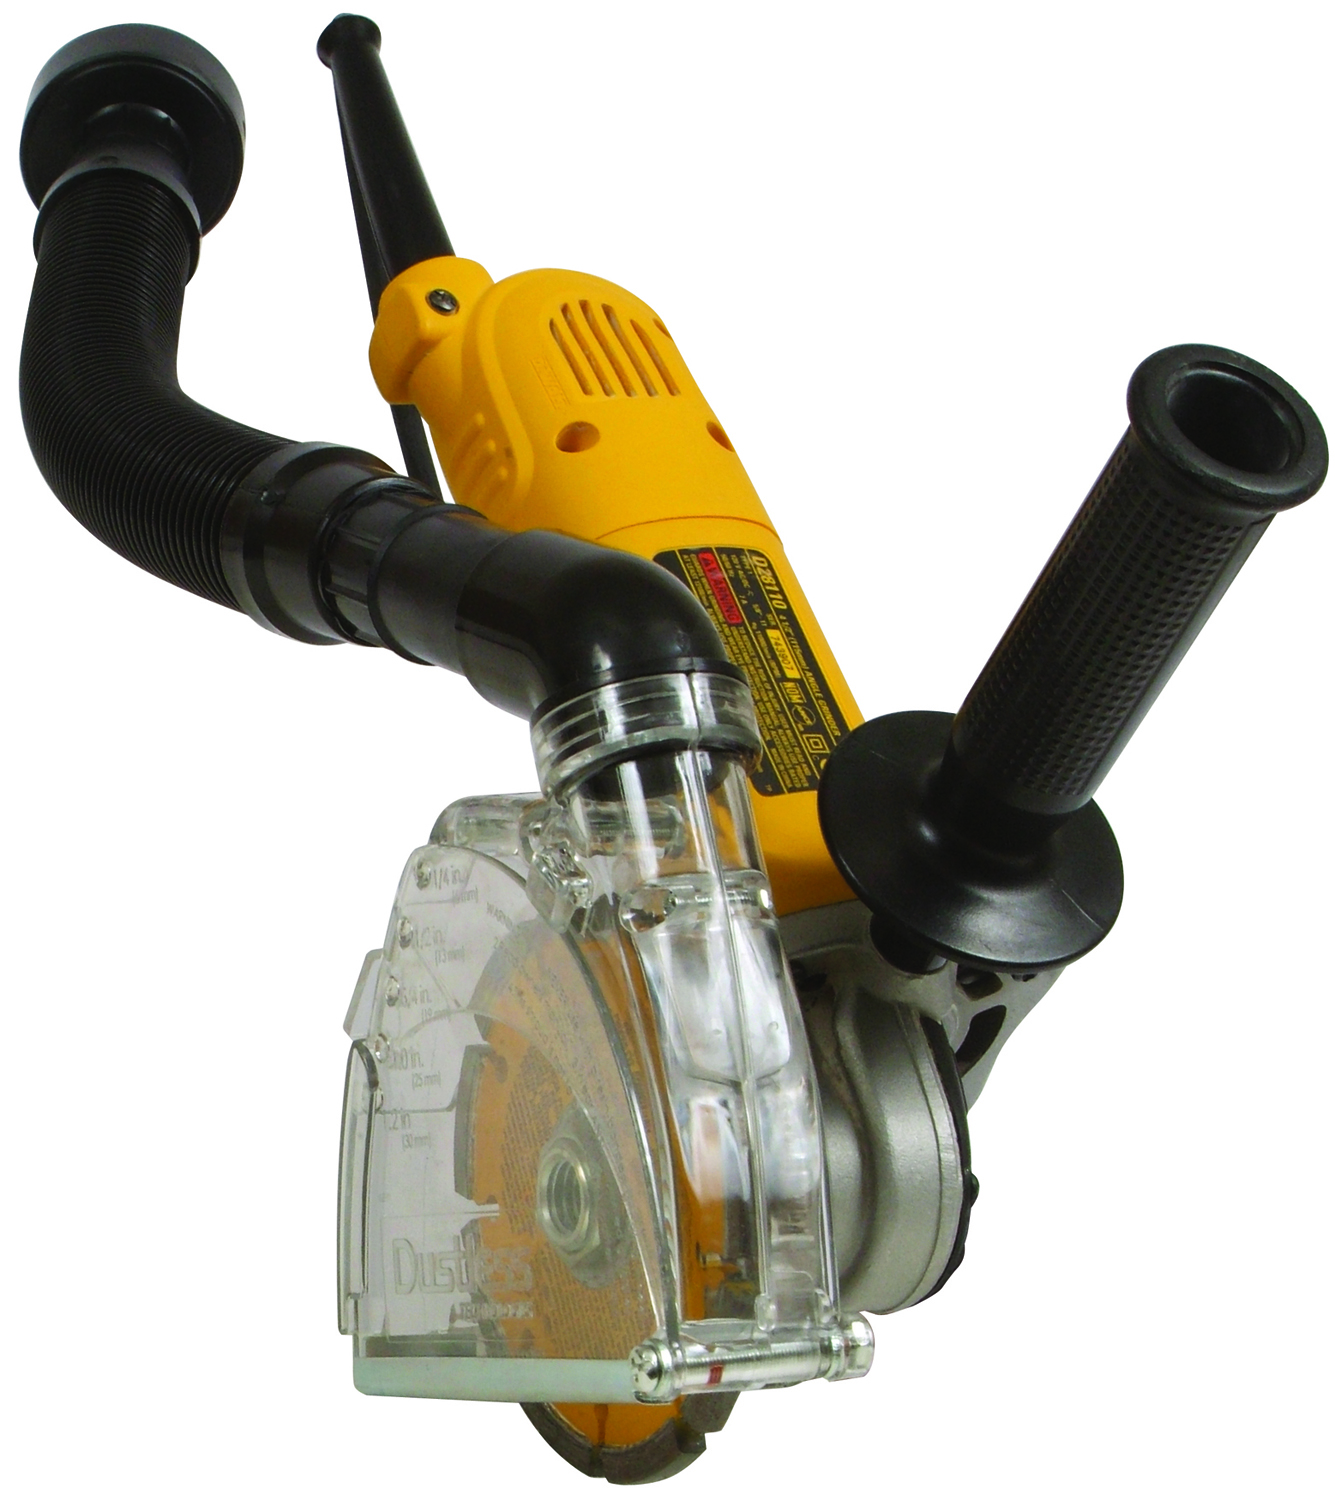 Power Tools Amp Accessories Dust Extractors For Electric